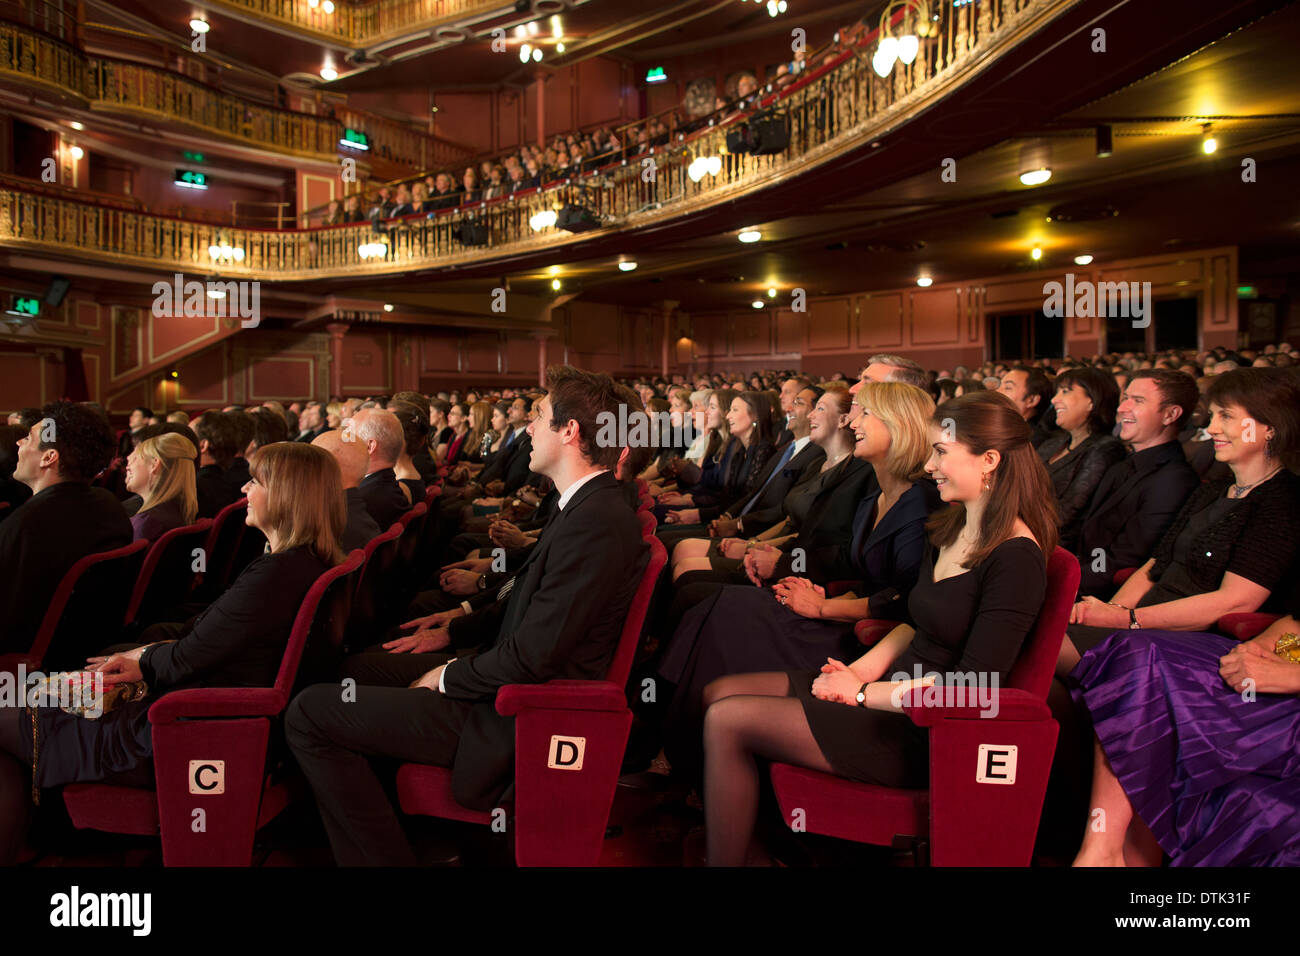 Audience watching performance in theater - Stock Image